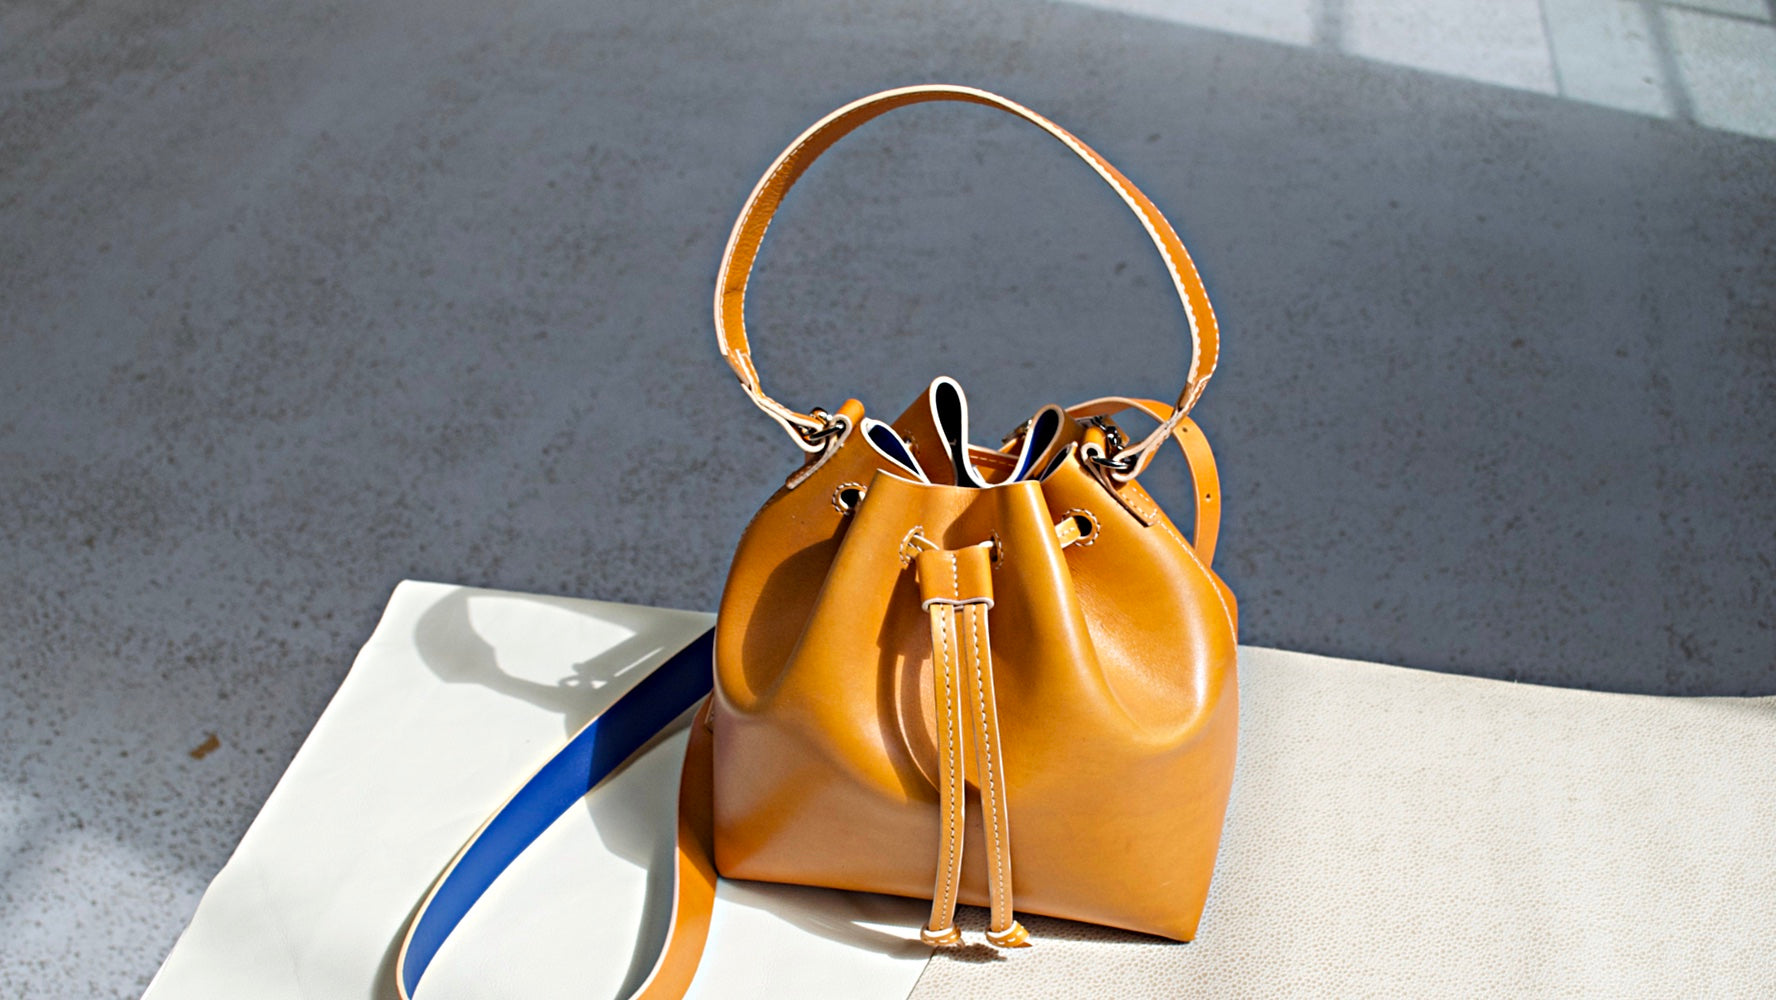 millie handcrafted leather bags by mollum vellum